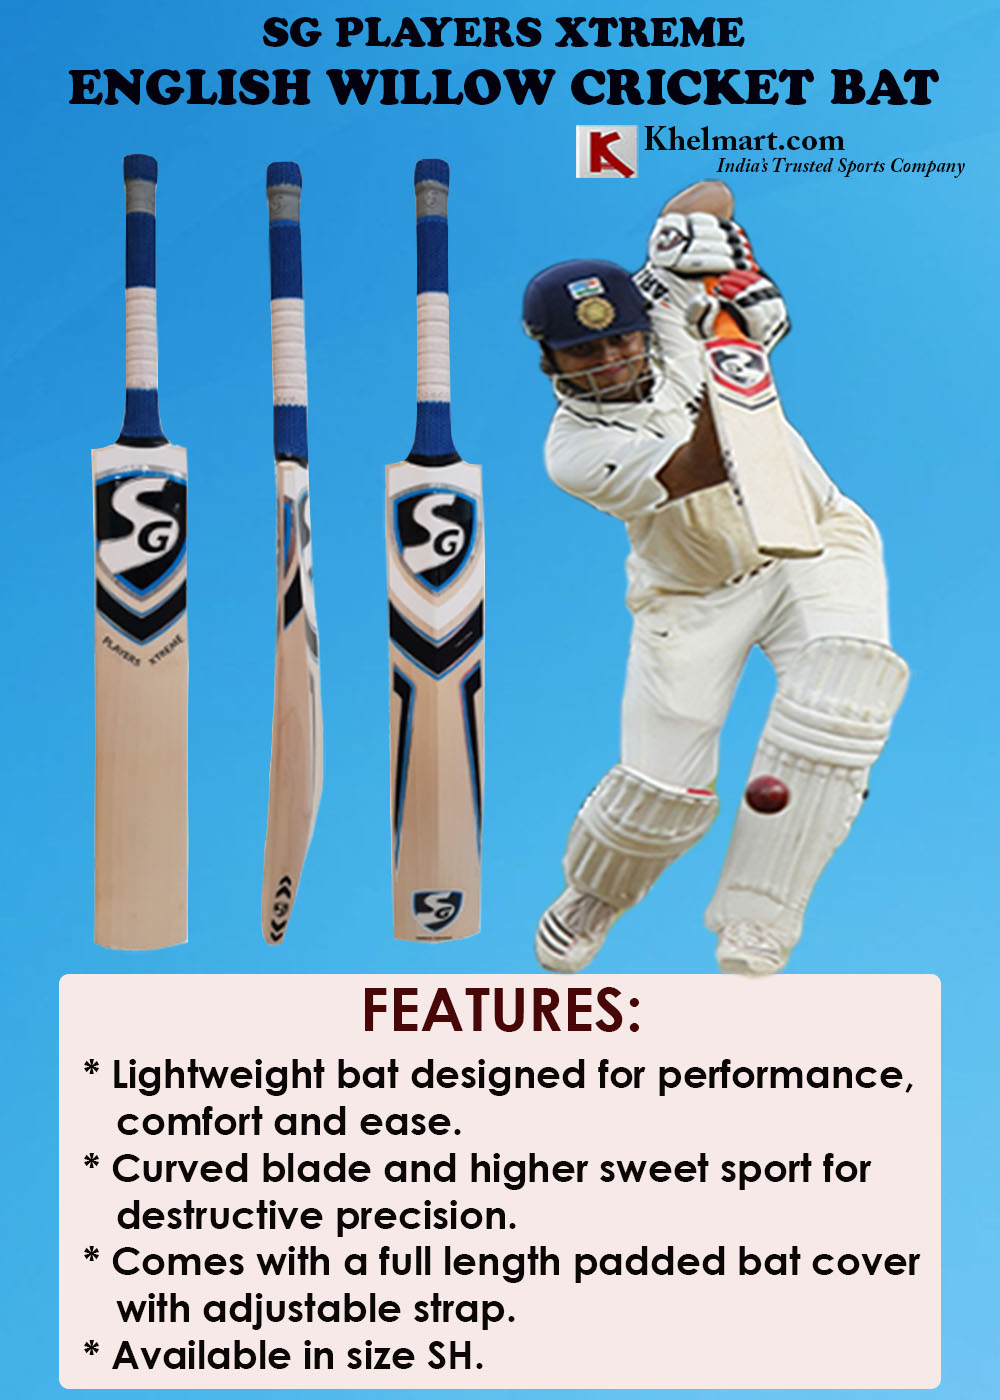 SG Players Xtreme English Willow Cricket Bat